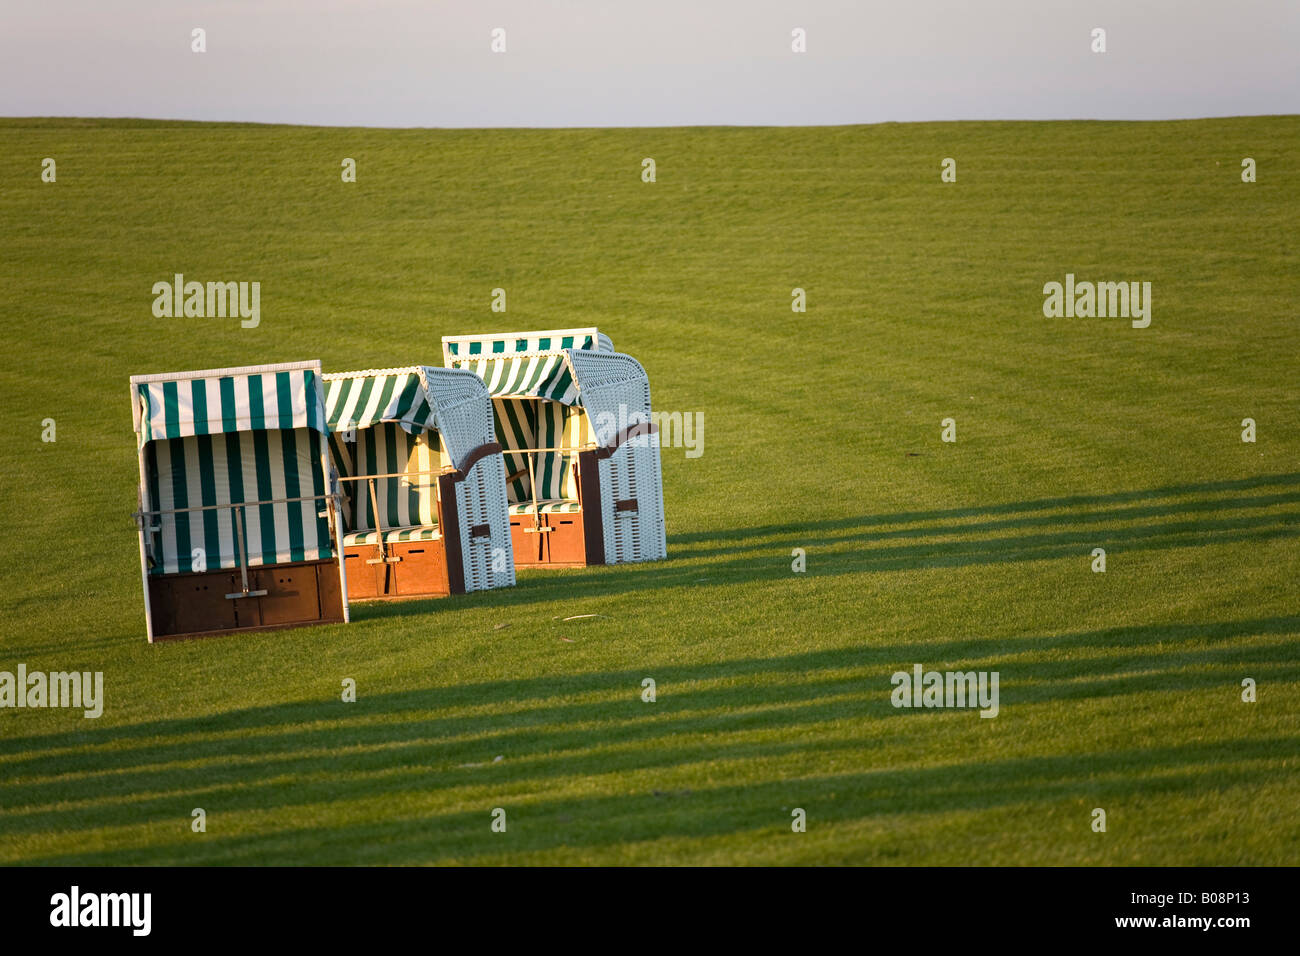 Empty beach chairs on grass, North Frisia, Schleswig Holstein, Northern Germany - Stock Image